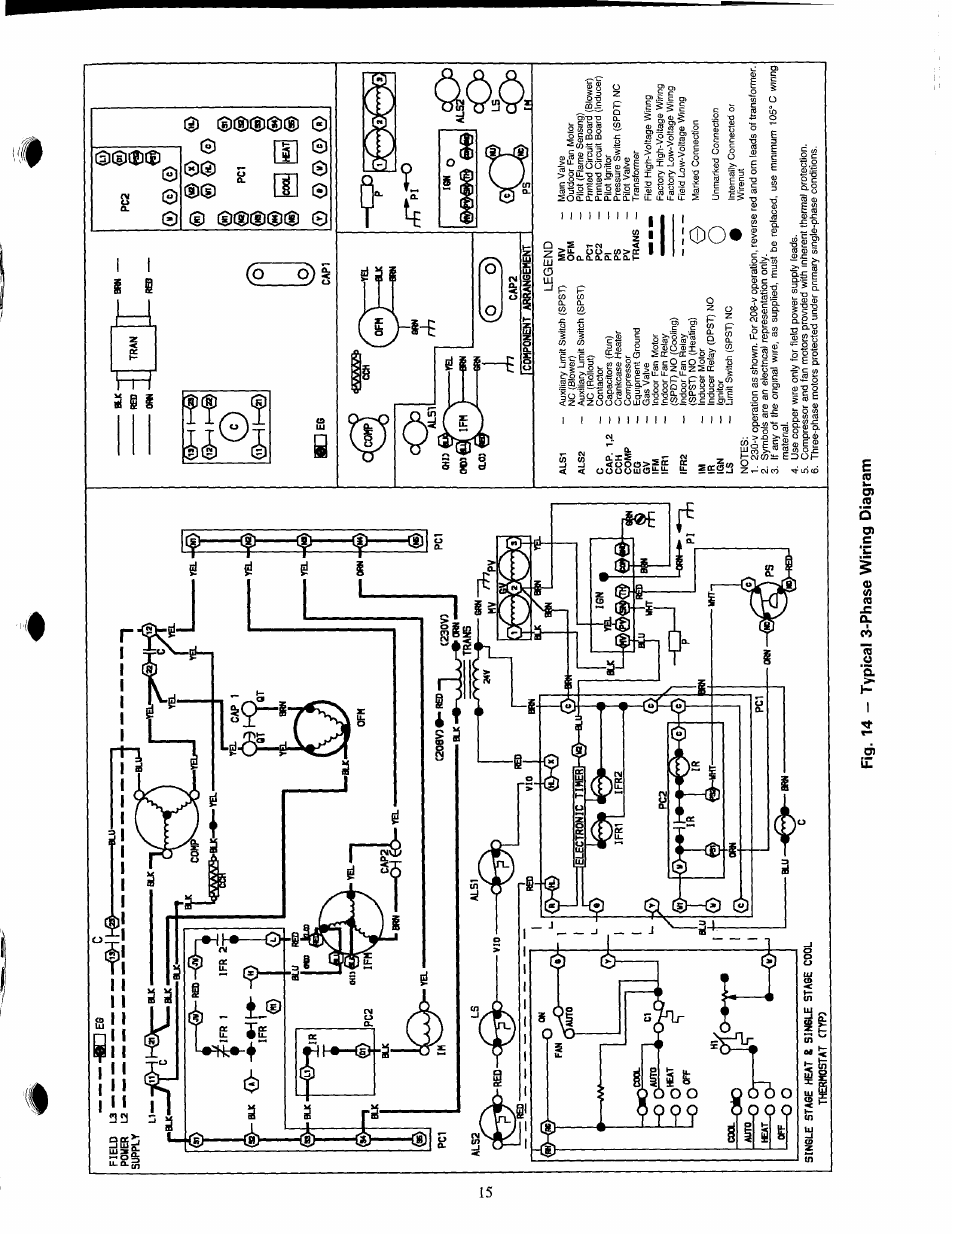 vintage emerson electric motor diagram emerson motor parts diagram   elsavadorla 220 Electric Motor Wiring Diagram Dpdt Toggle Switch Wiring Diagram